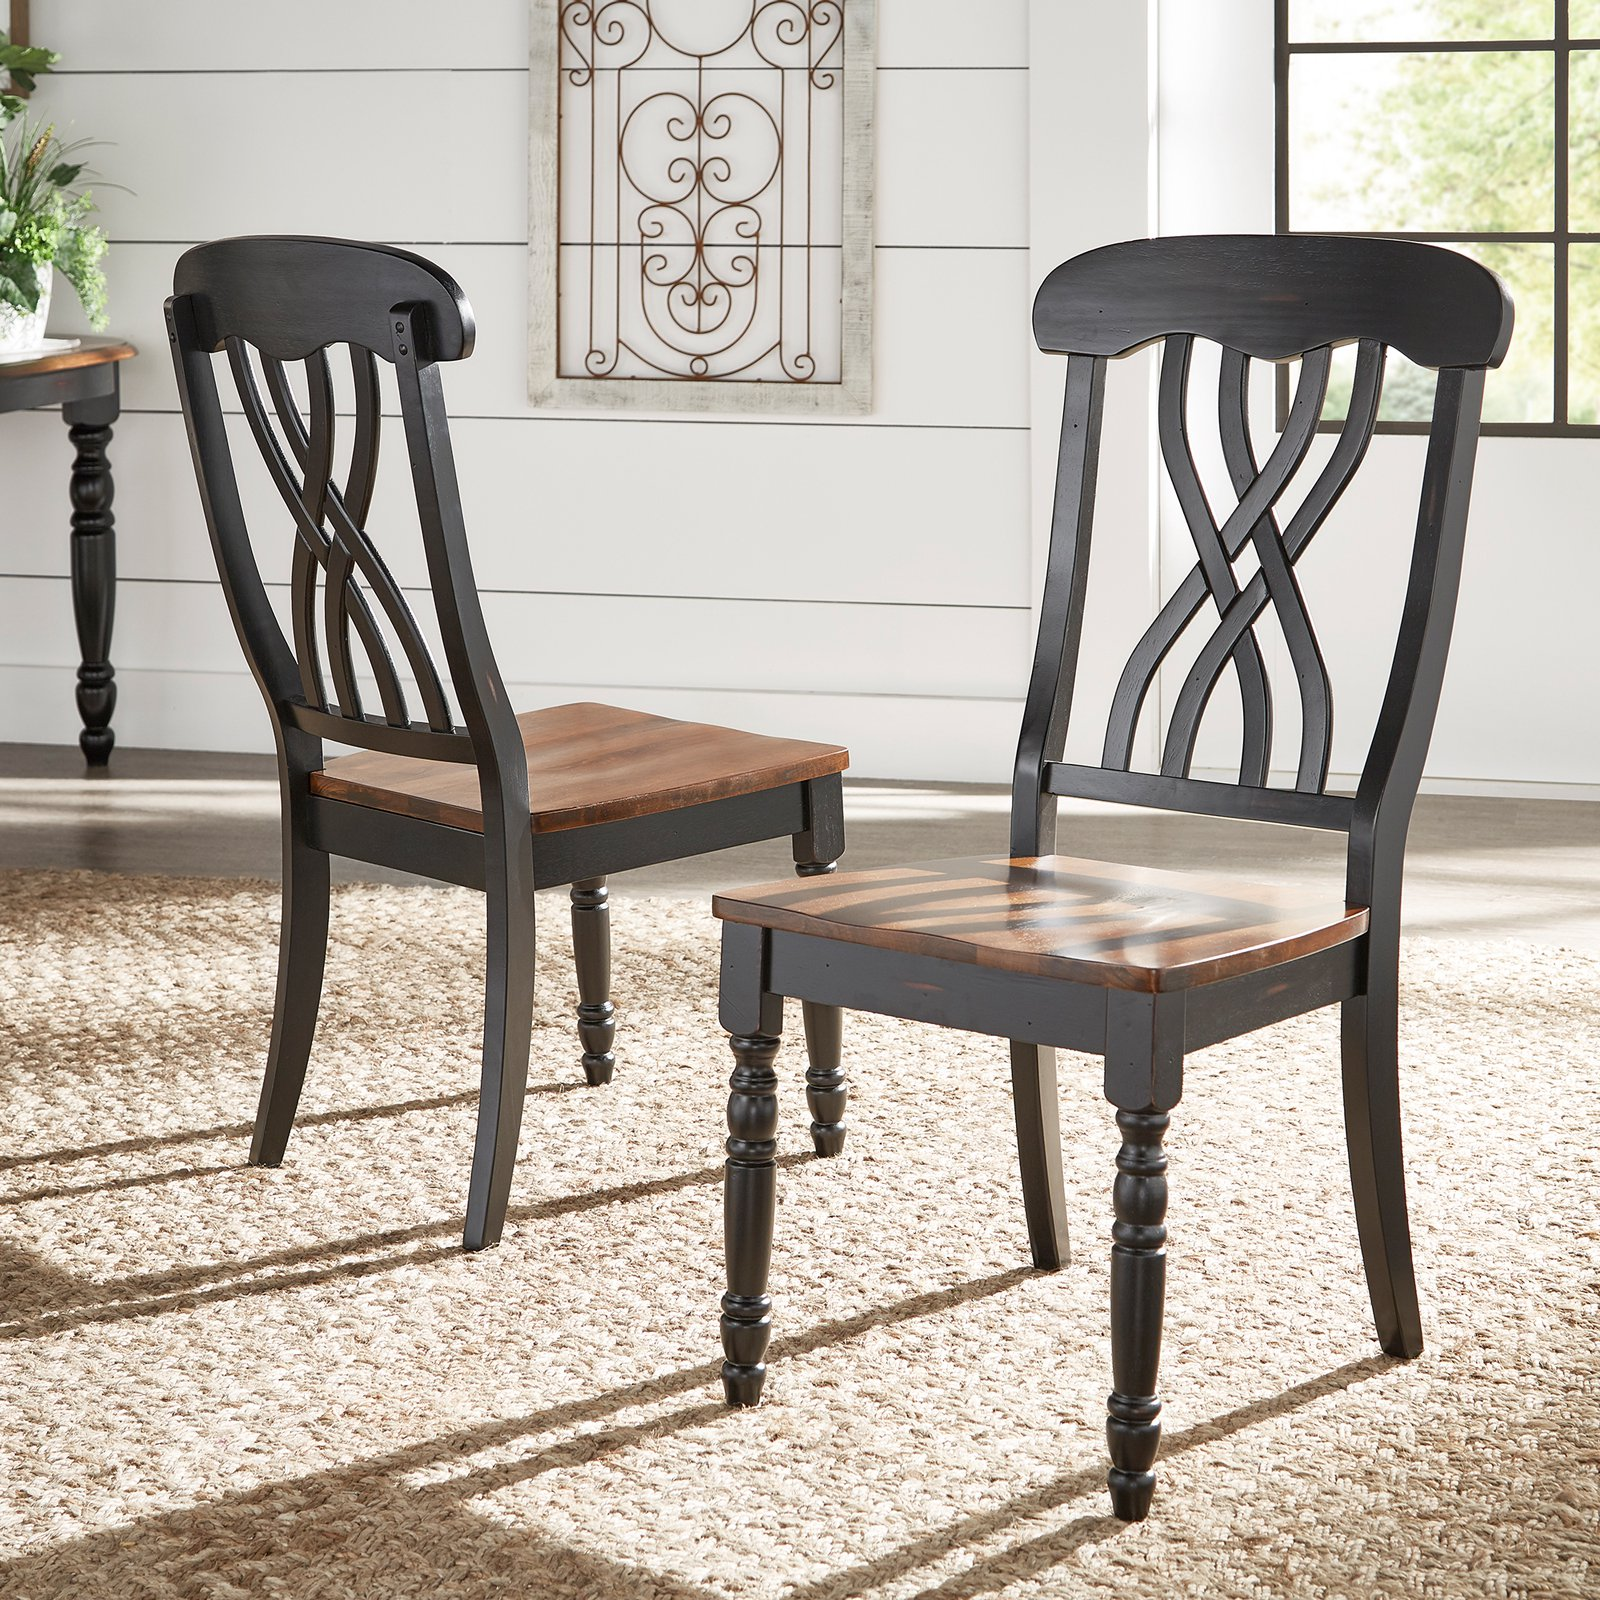 Weston Home Ohana Two Tone Dining Side Chair Set of 2 by Top-Line Furniture Warehouse